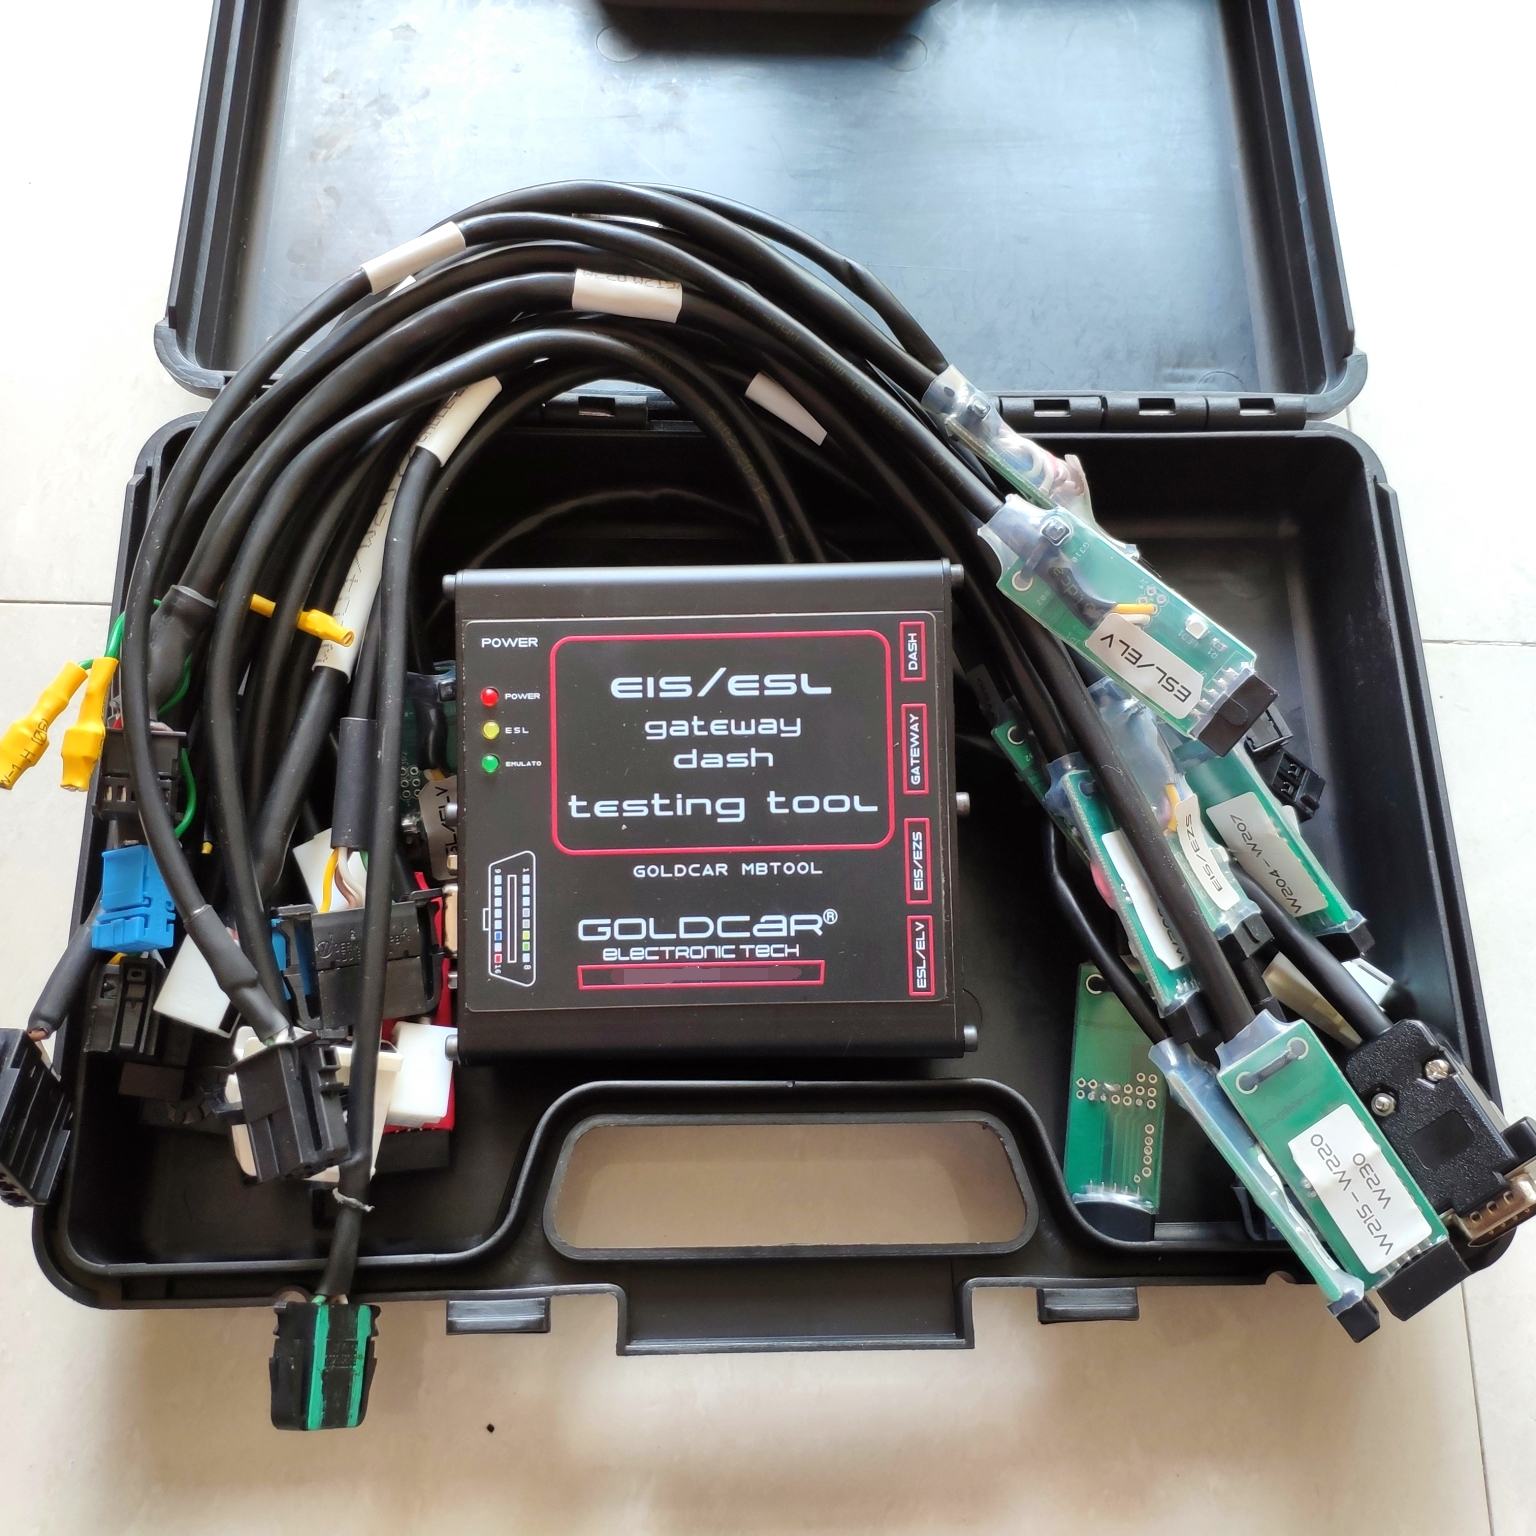 EZS EIS ELV ESL Dash Gateway Super Tester Full Set for Mercedes Benz - Do Jobs on Bench